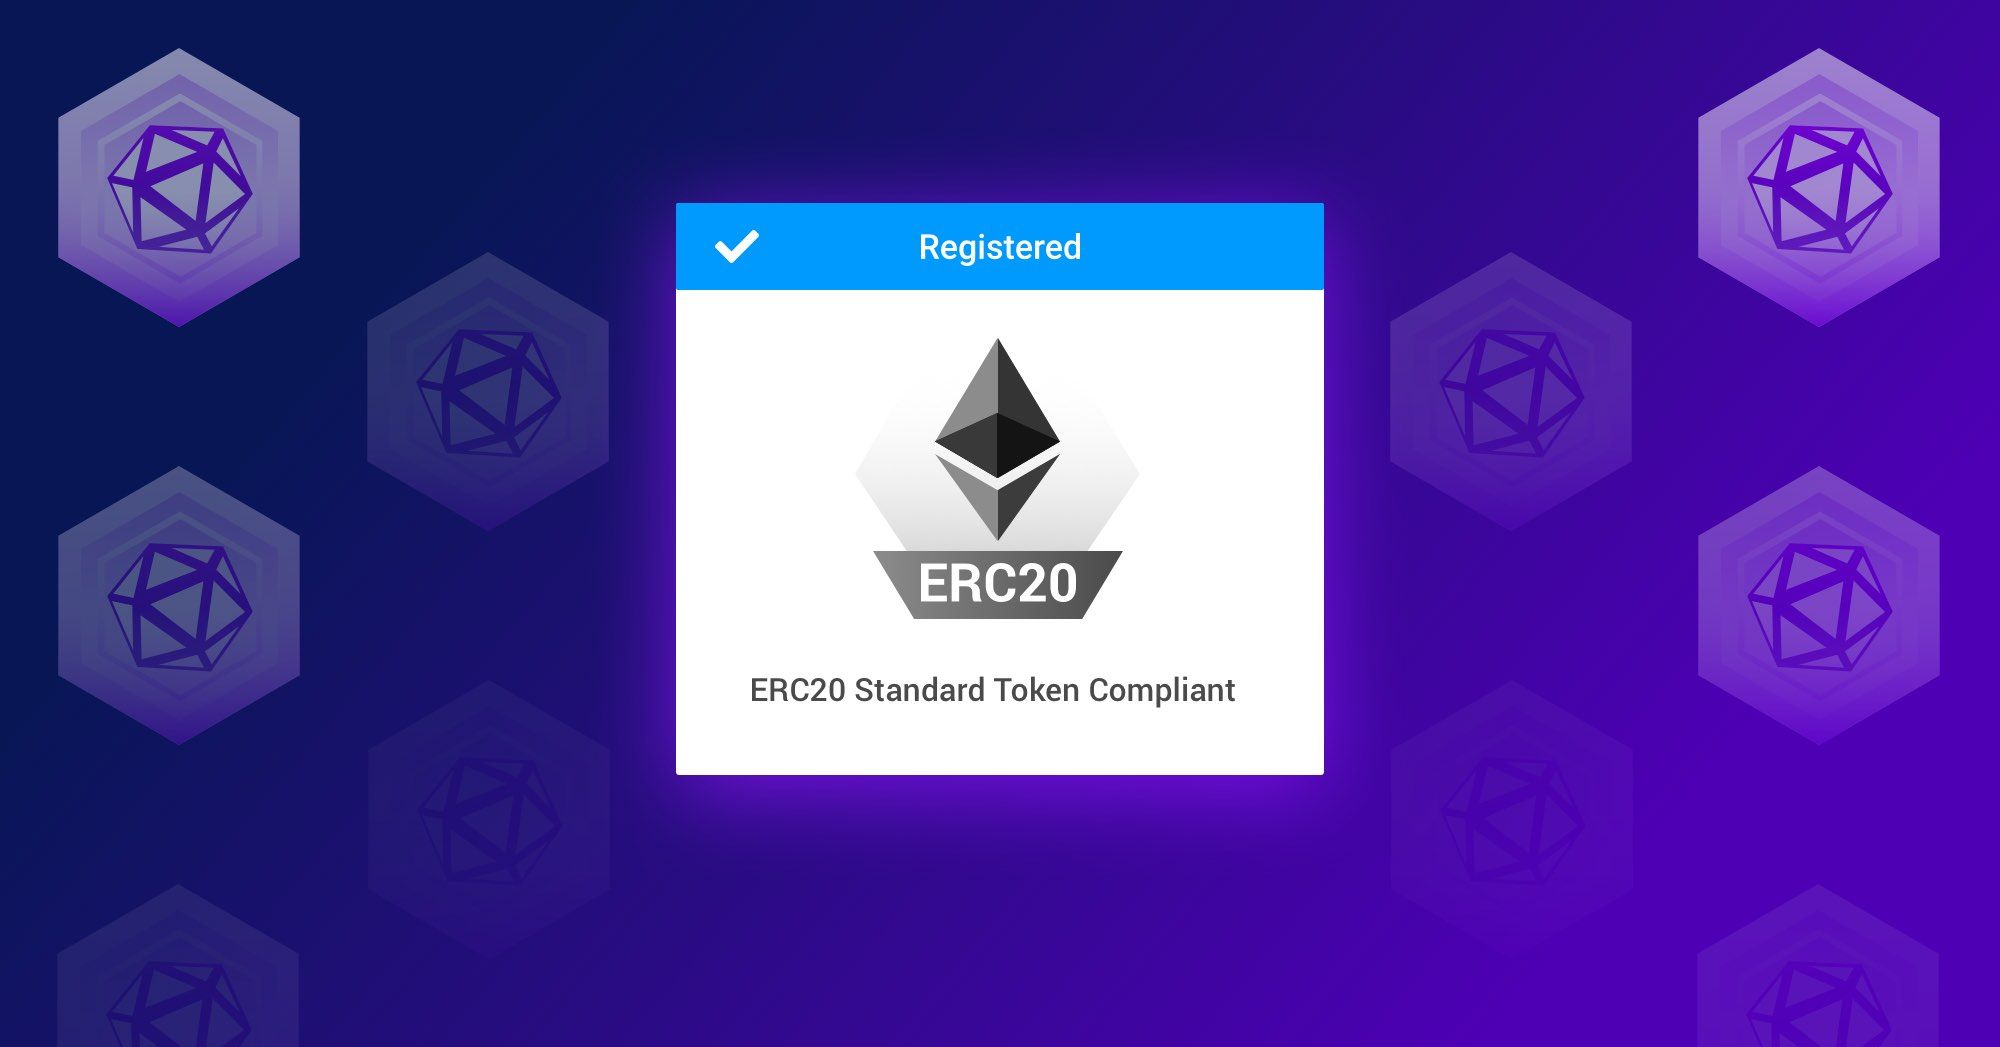 Kleros Token² Curated Registry - The ERC20 Badge Joins The Party